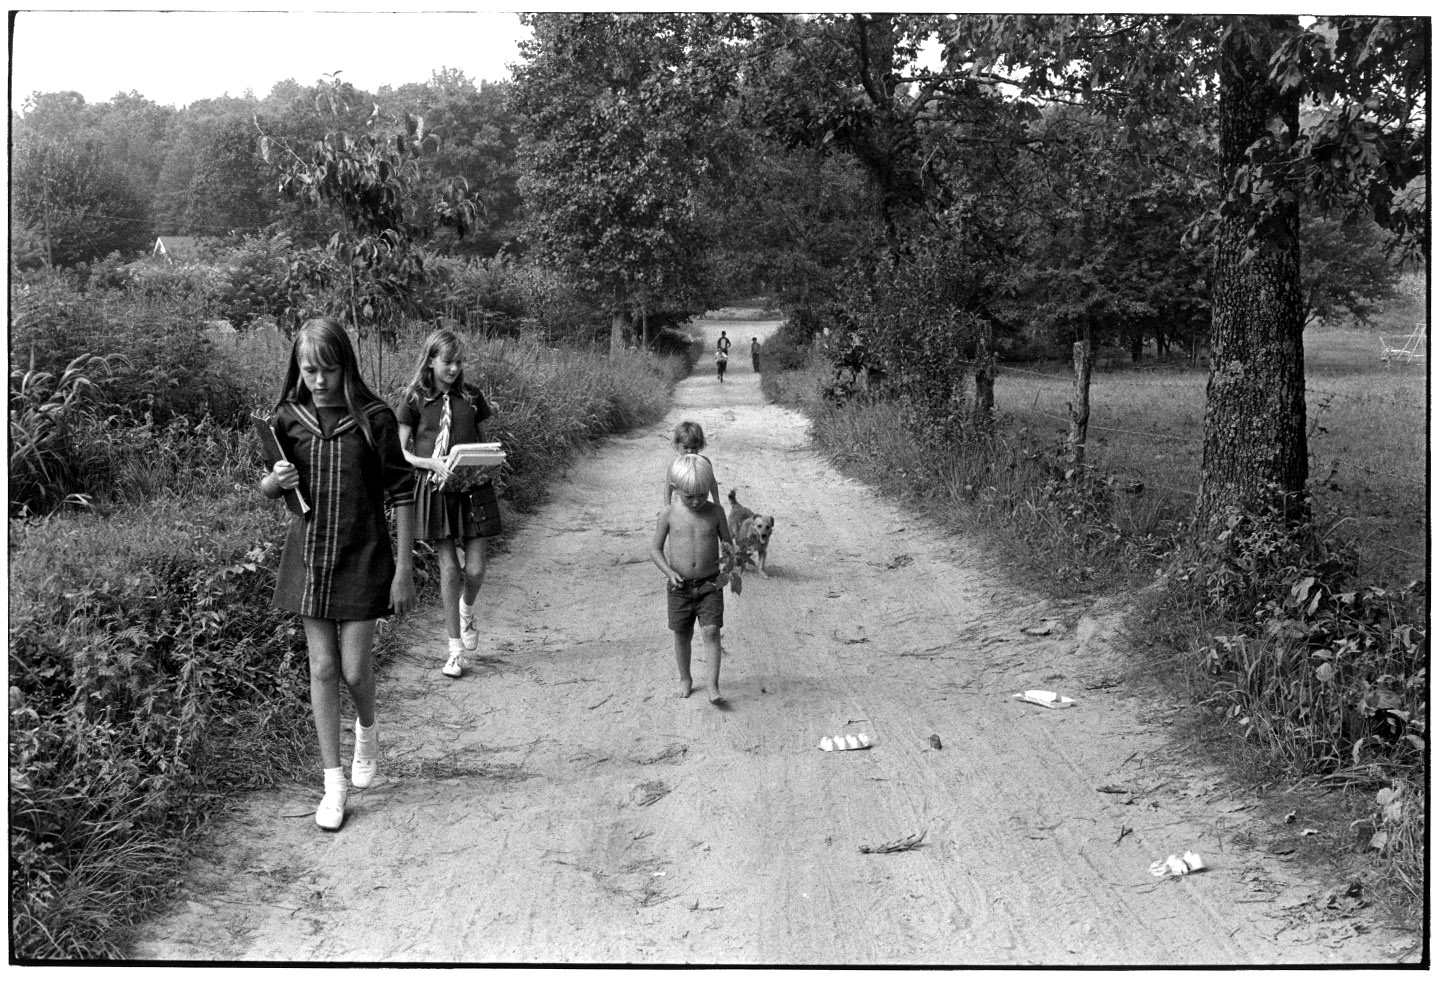 """Children and a dog walking on dirt road; two girls carrying books"" - William Gedney, 1972"